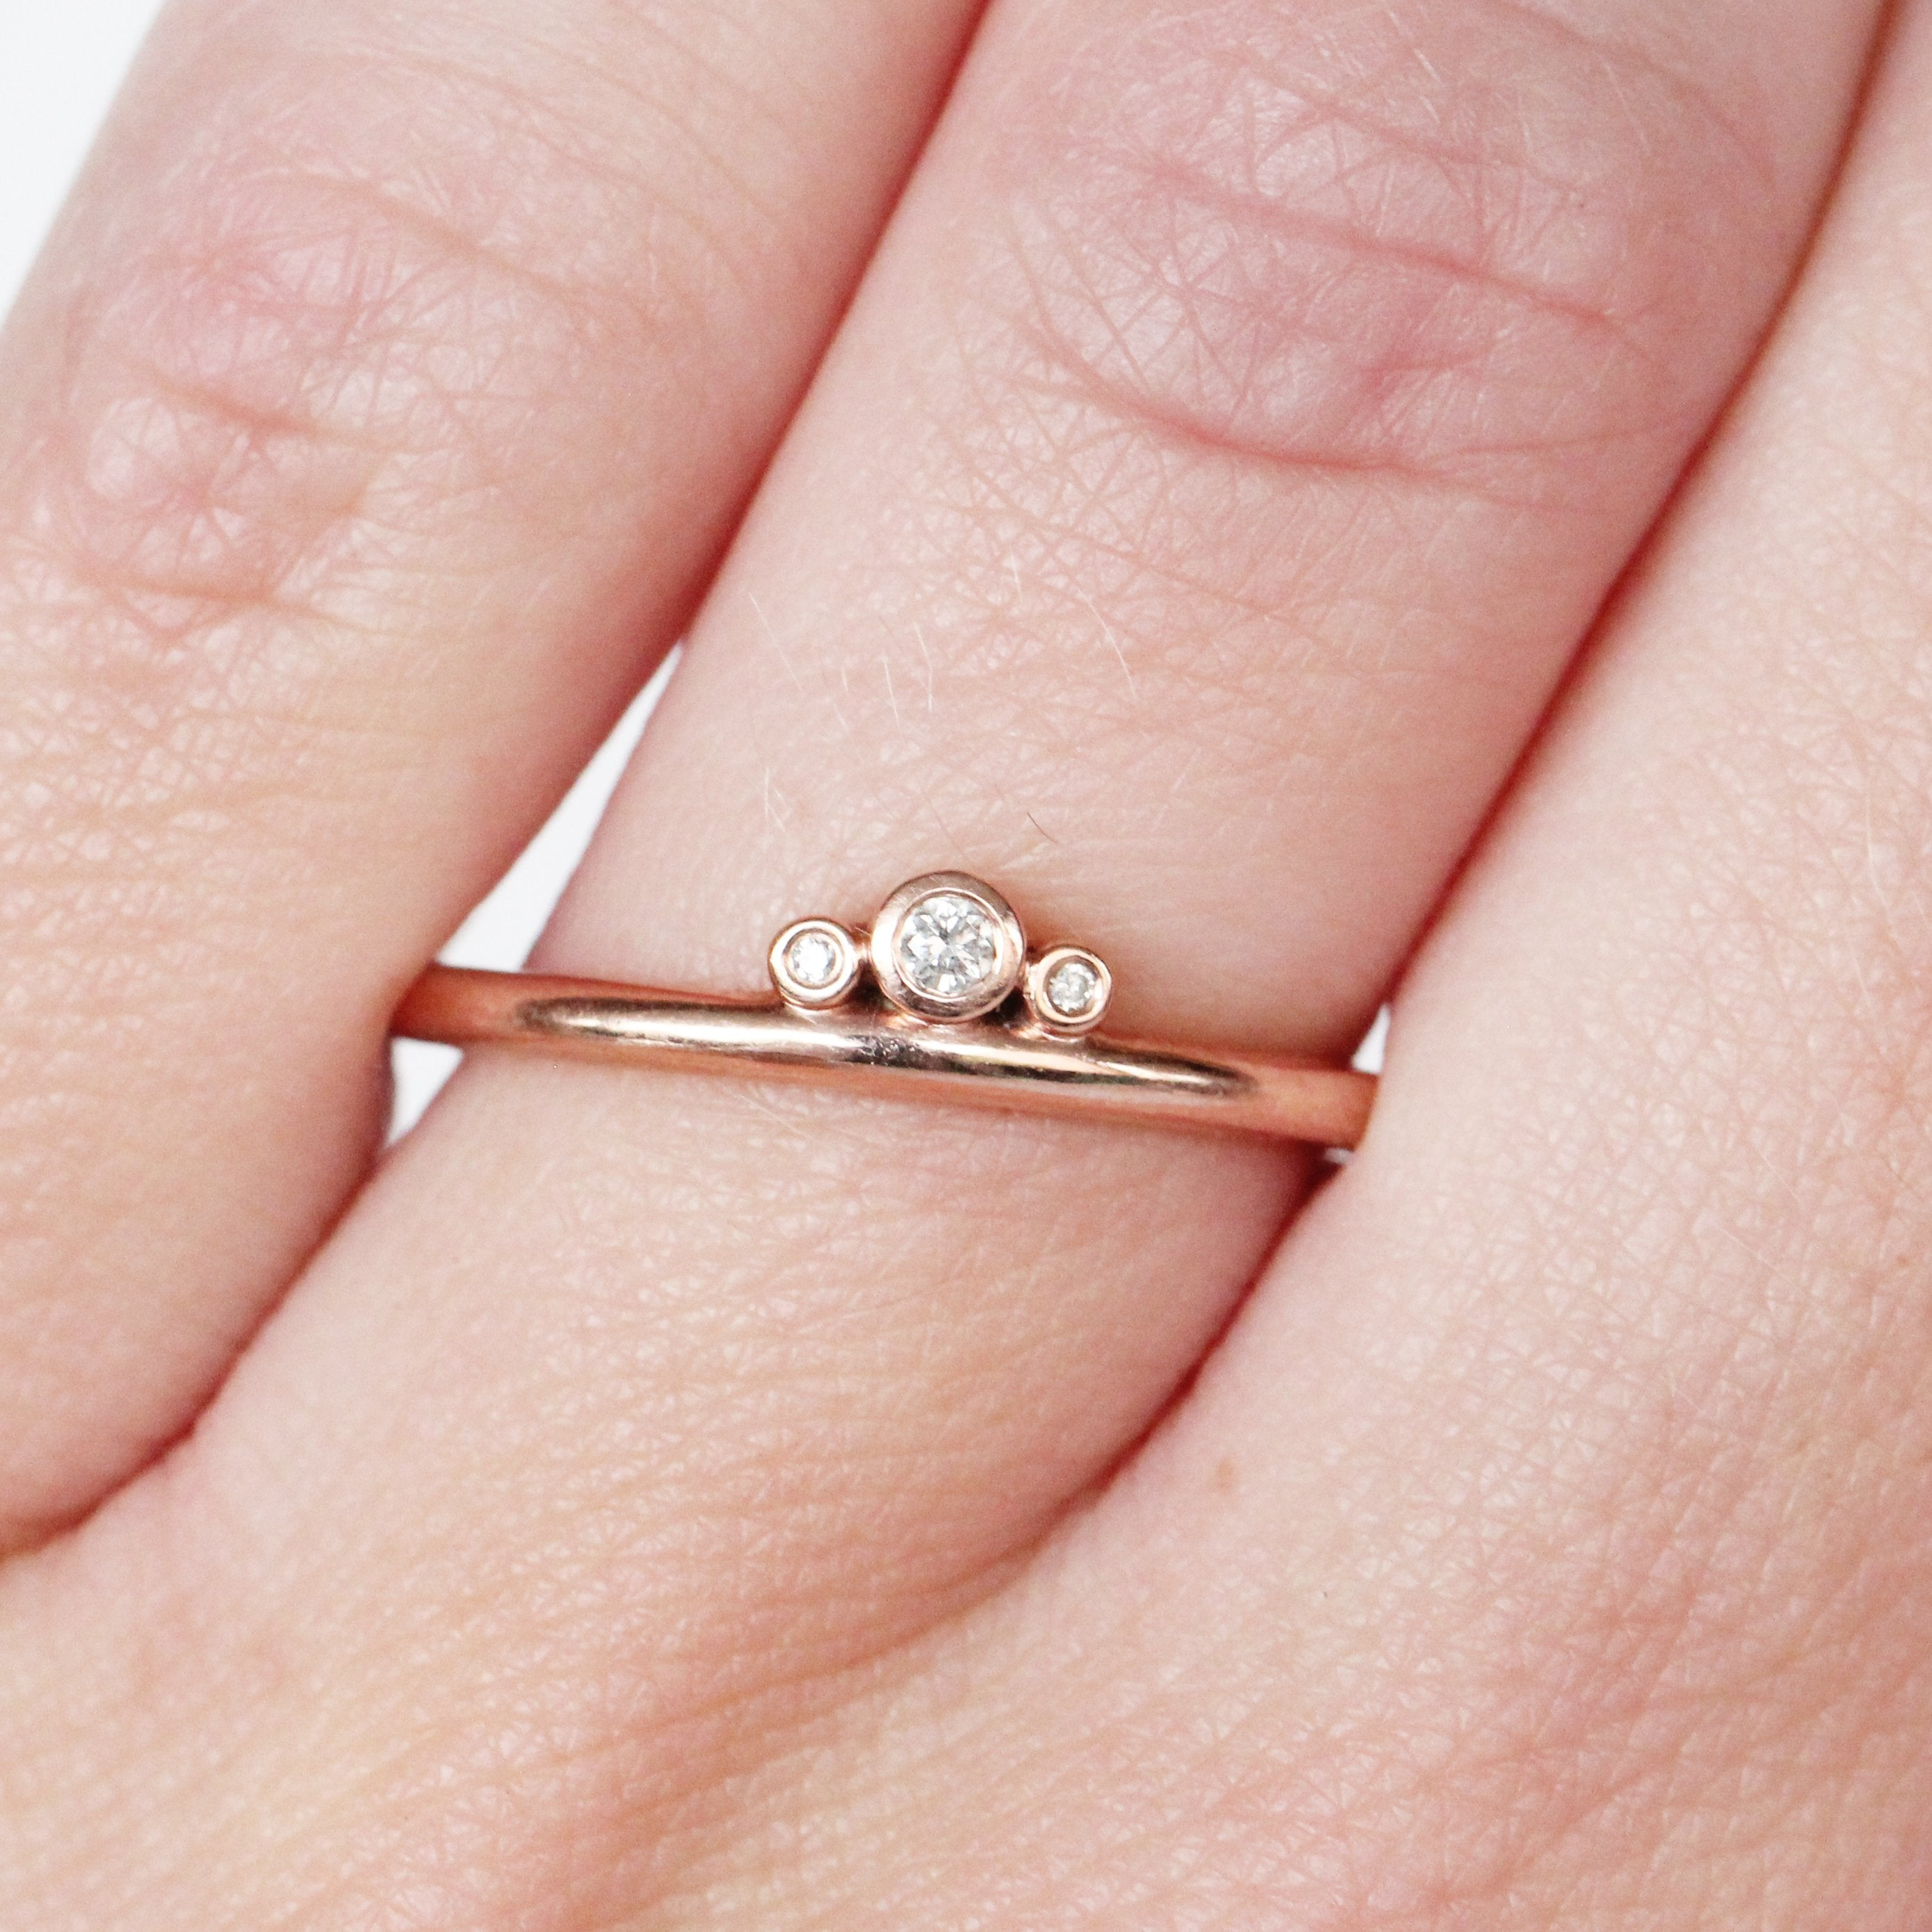 Trinity Ring with Bezel Set Diamonds in 10k Rose Gold - Ready to Size and Ship - Salt & Pepper Celestial Diamond Engagement Rings and Wedding Bands  by Midwinter Co.